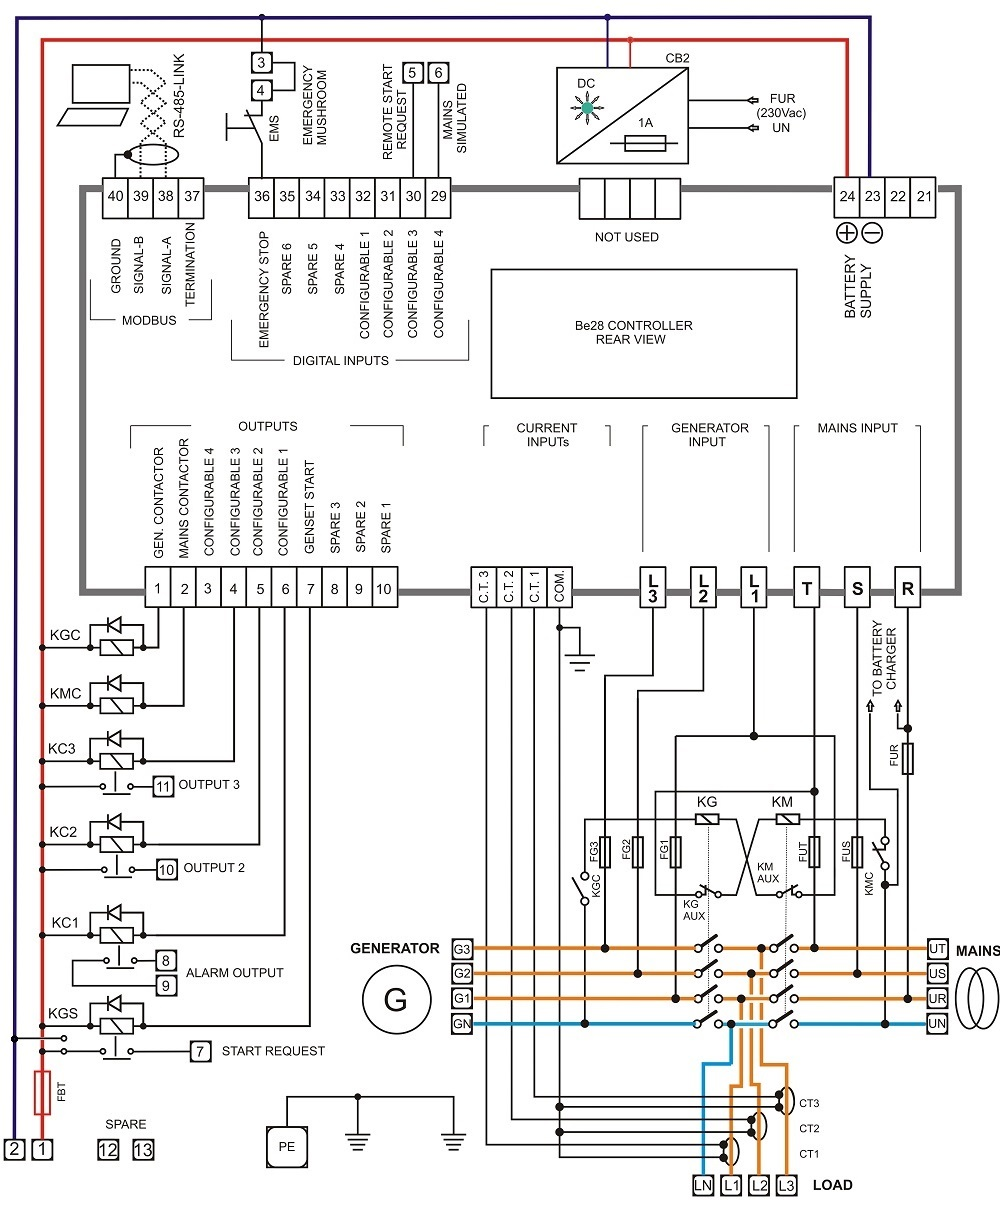 Old fashioned citroen xsara picasso wiring diagram image best unique citroen xsara picasso wiring diagram inspiration best asfbconference2016 Gallery